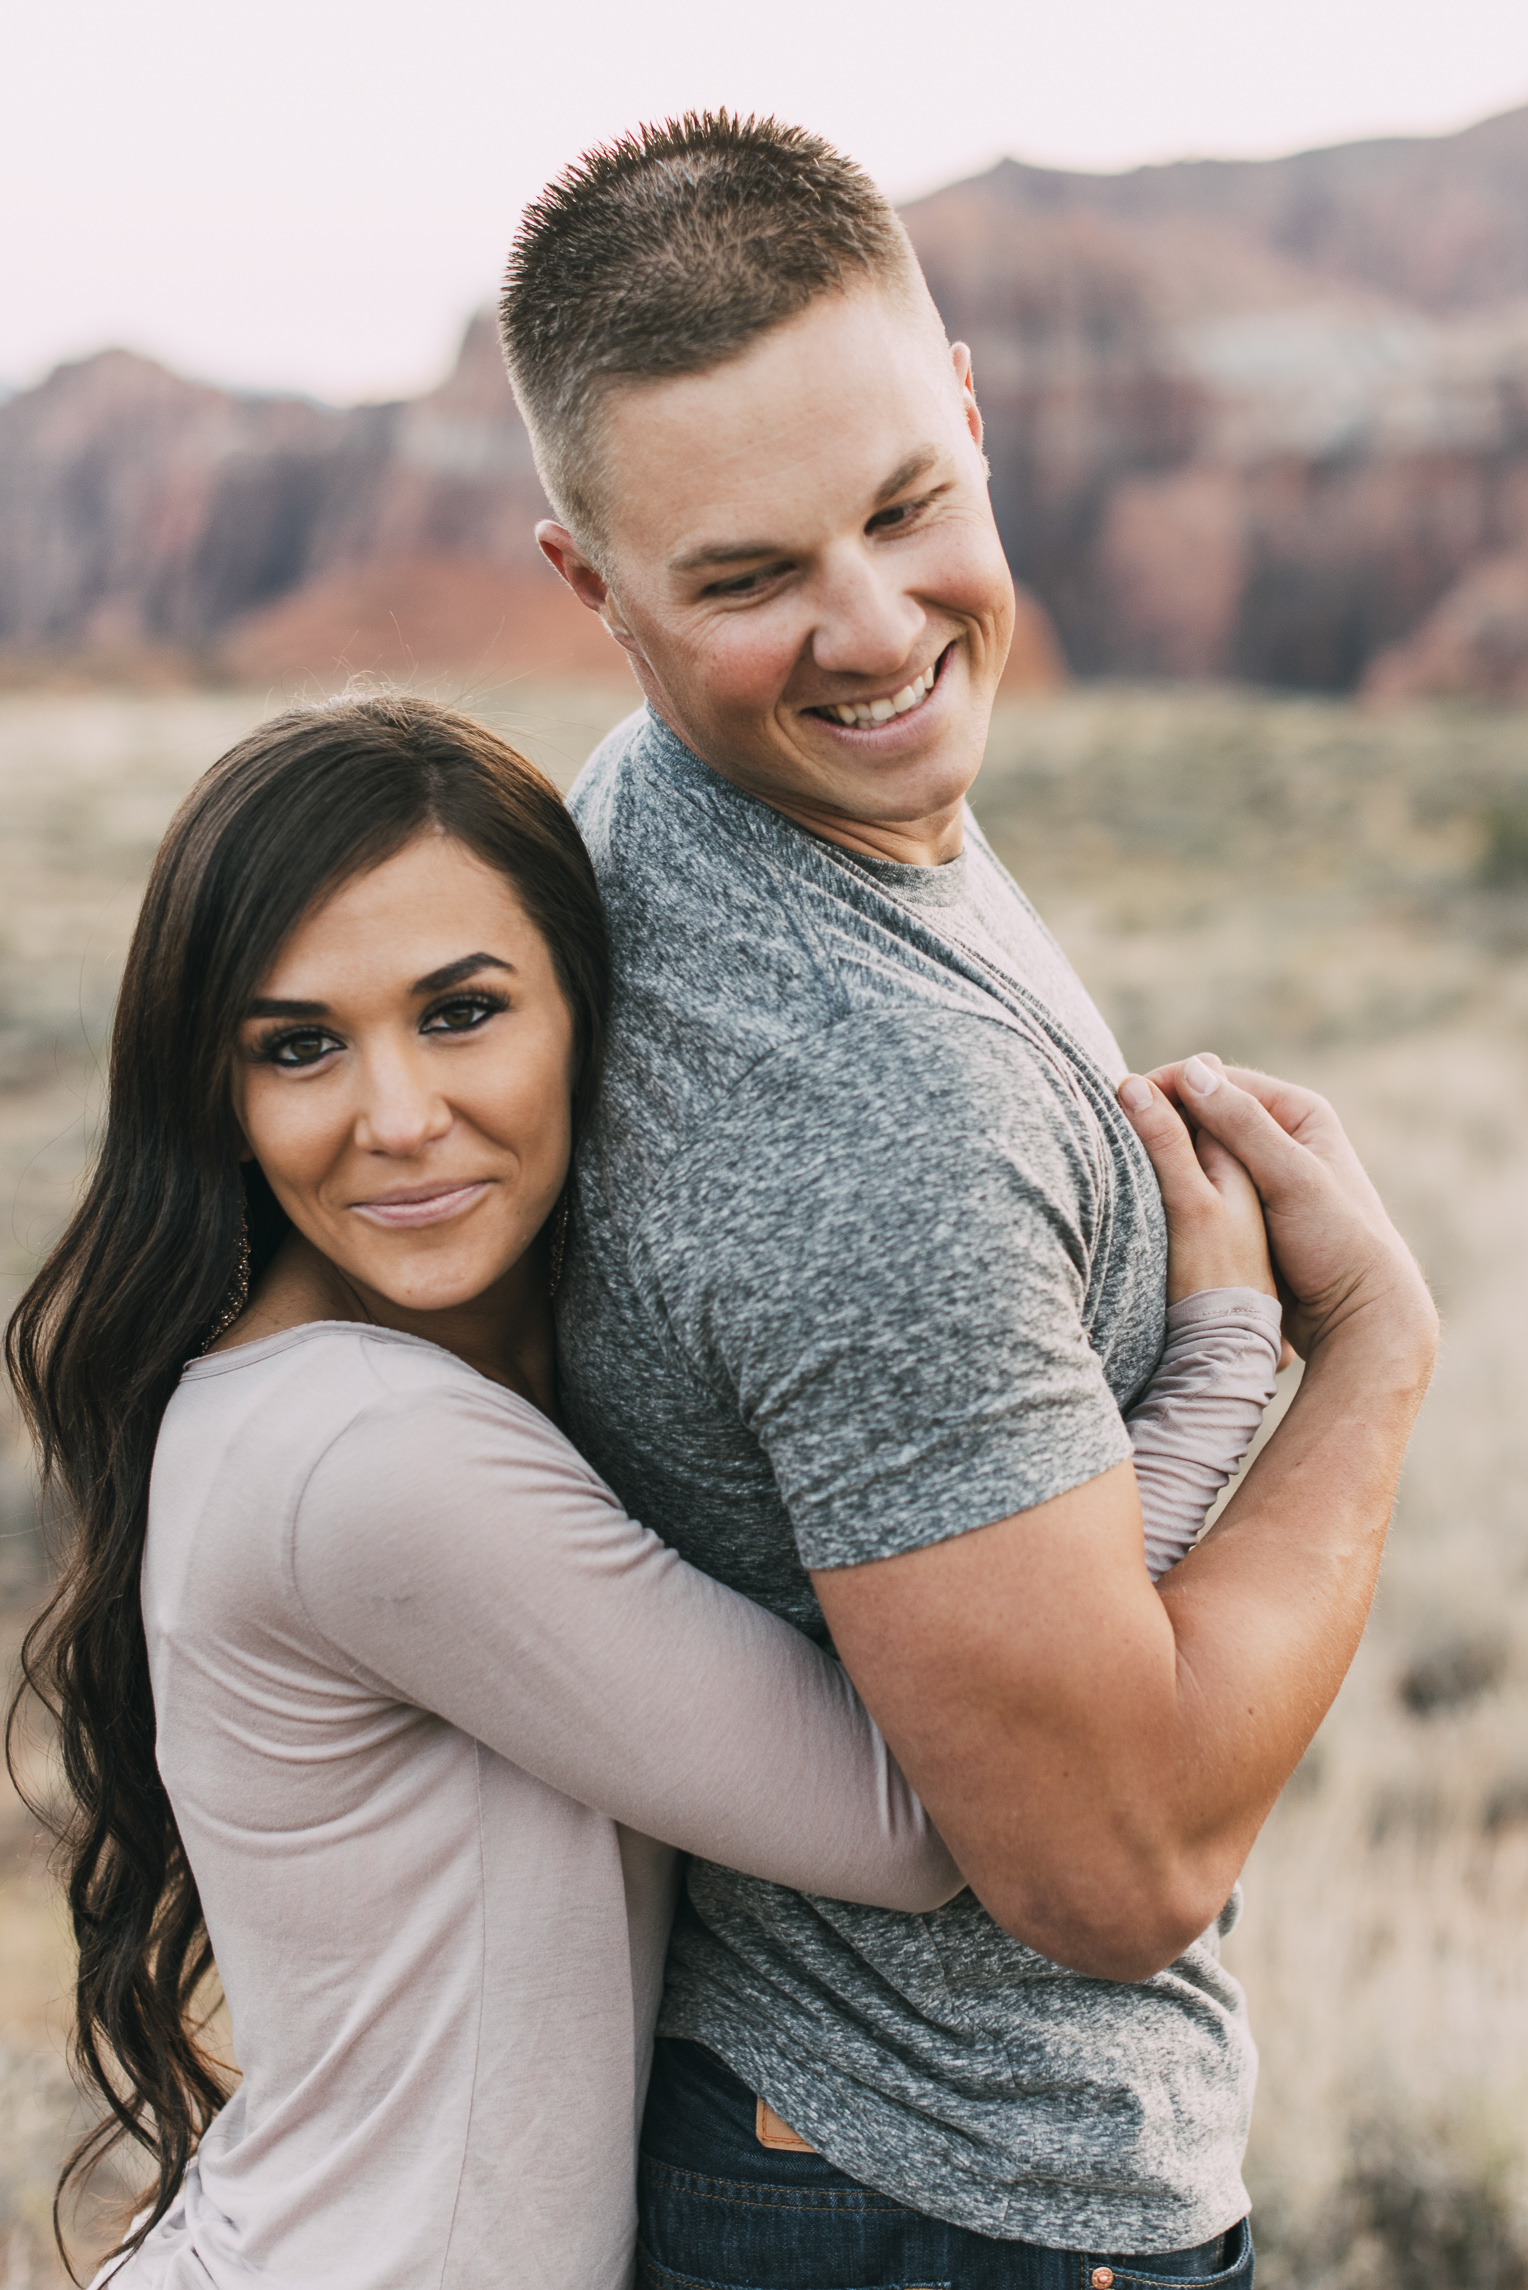 050416KELSEY & RUSTIN ENGAGEMENTS - ST. GEORGE LAS VEGAS PHOTOGRAPHER - DEBI RAE PHOTOGRAPHY-106.jpg